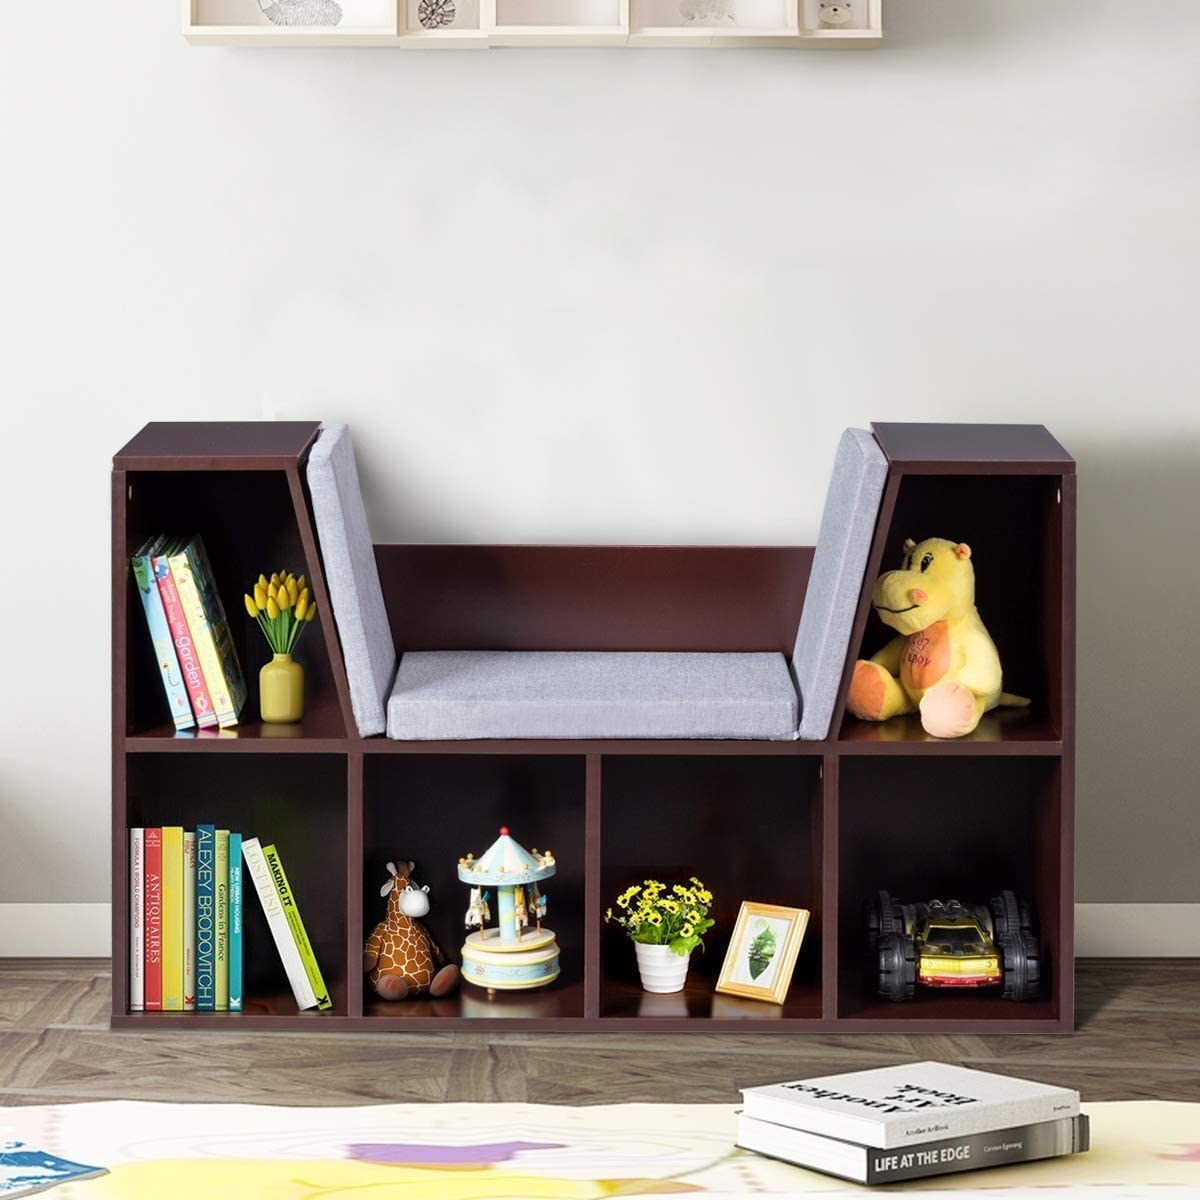 A five-shelf bookcase with a padded seat in the center